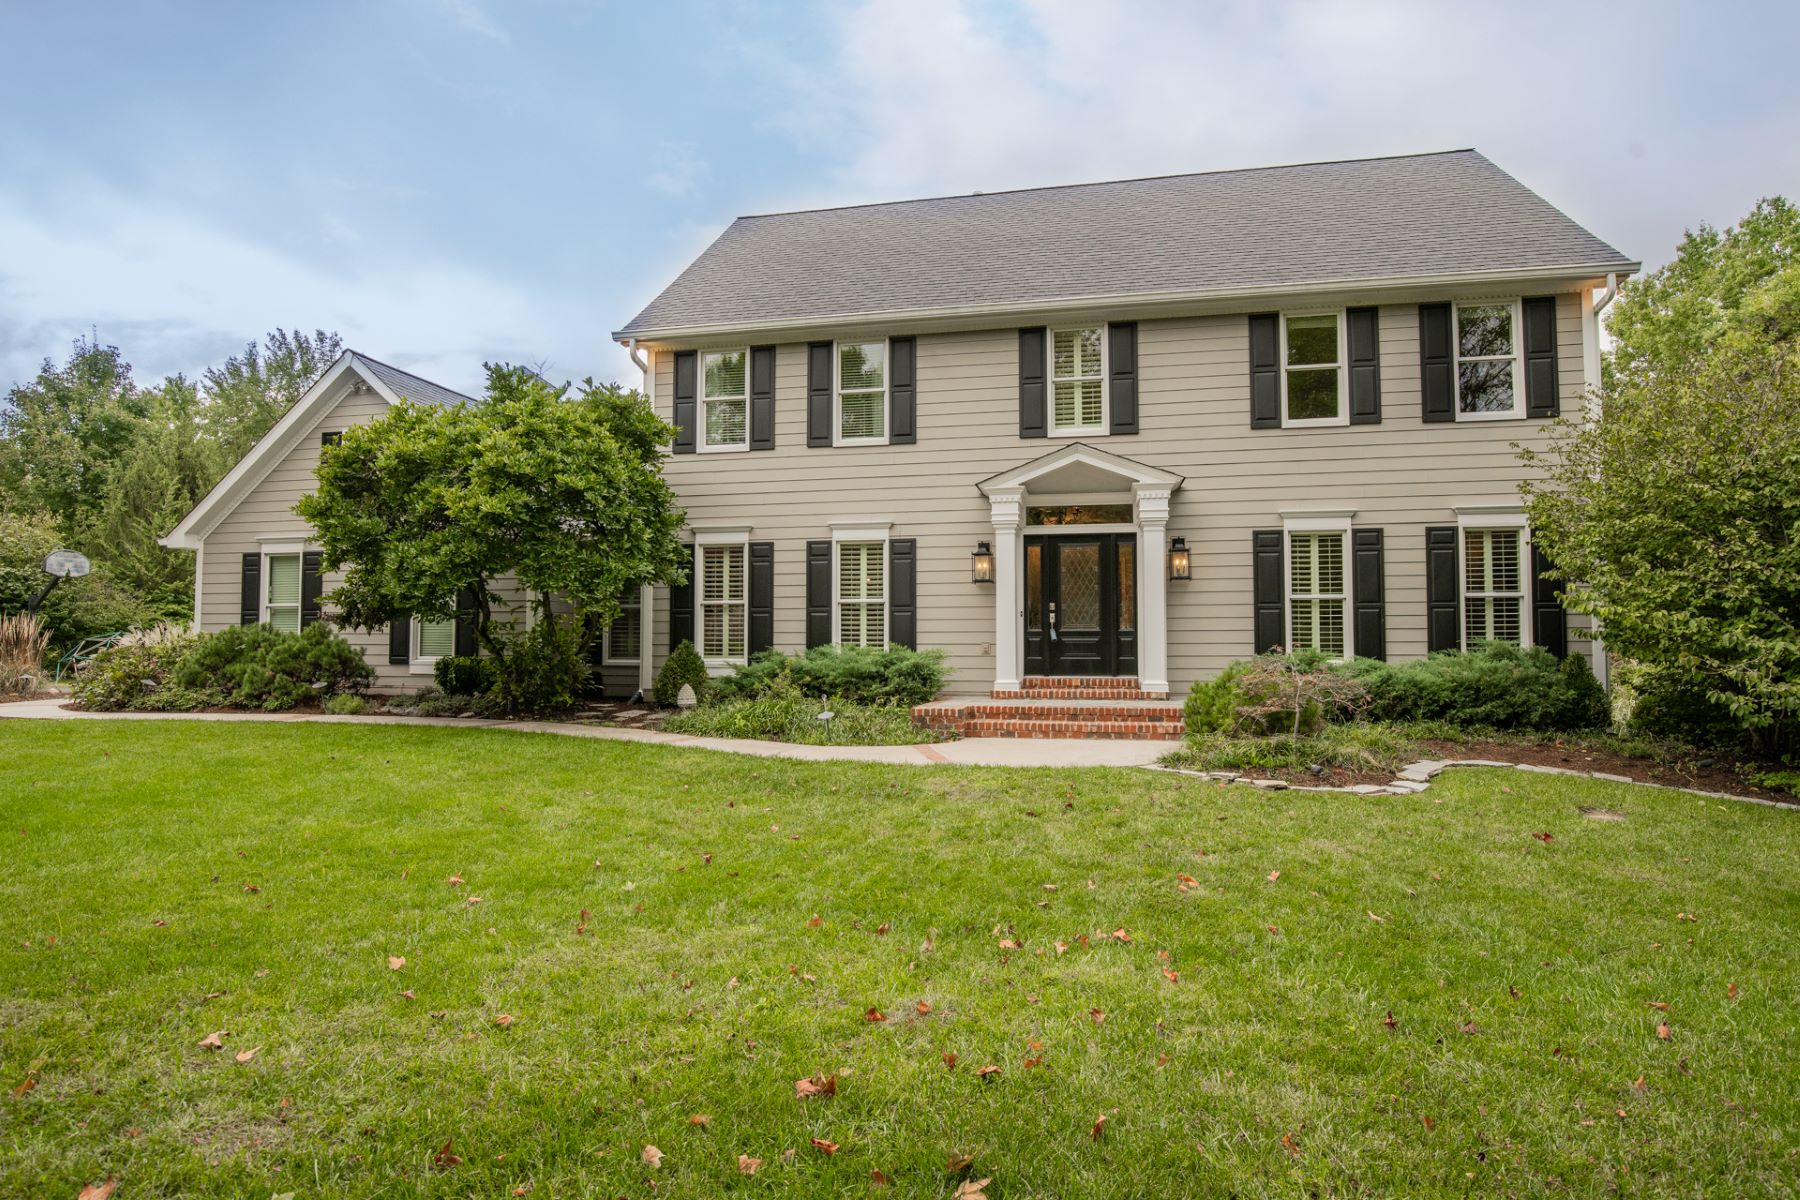 Single Family Homes のために 売買 アット Well-Updated Chesterfield Colonial 16434 Wilson Farm Drive, Chesterfield, ミズーリ 63005 アメリカ